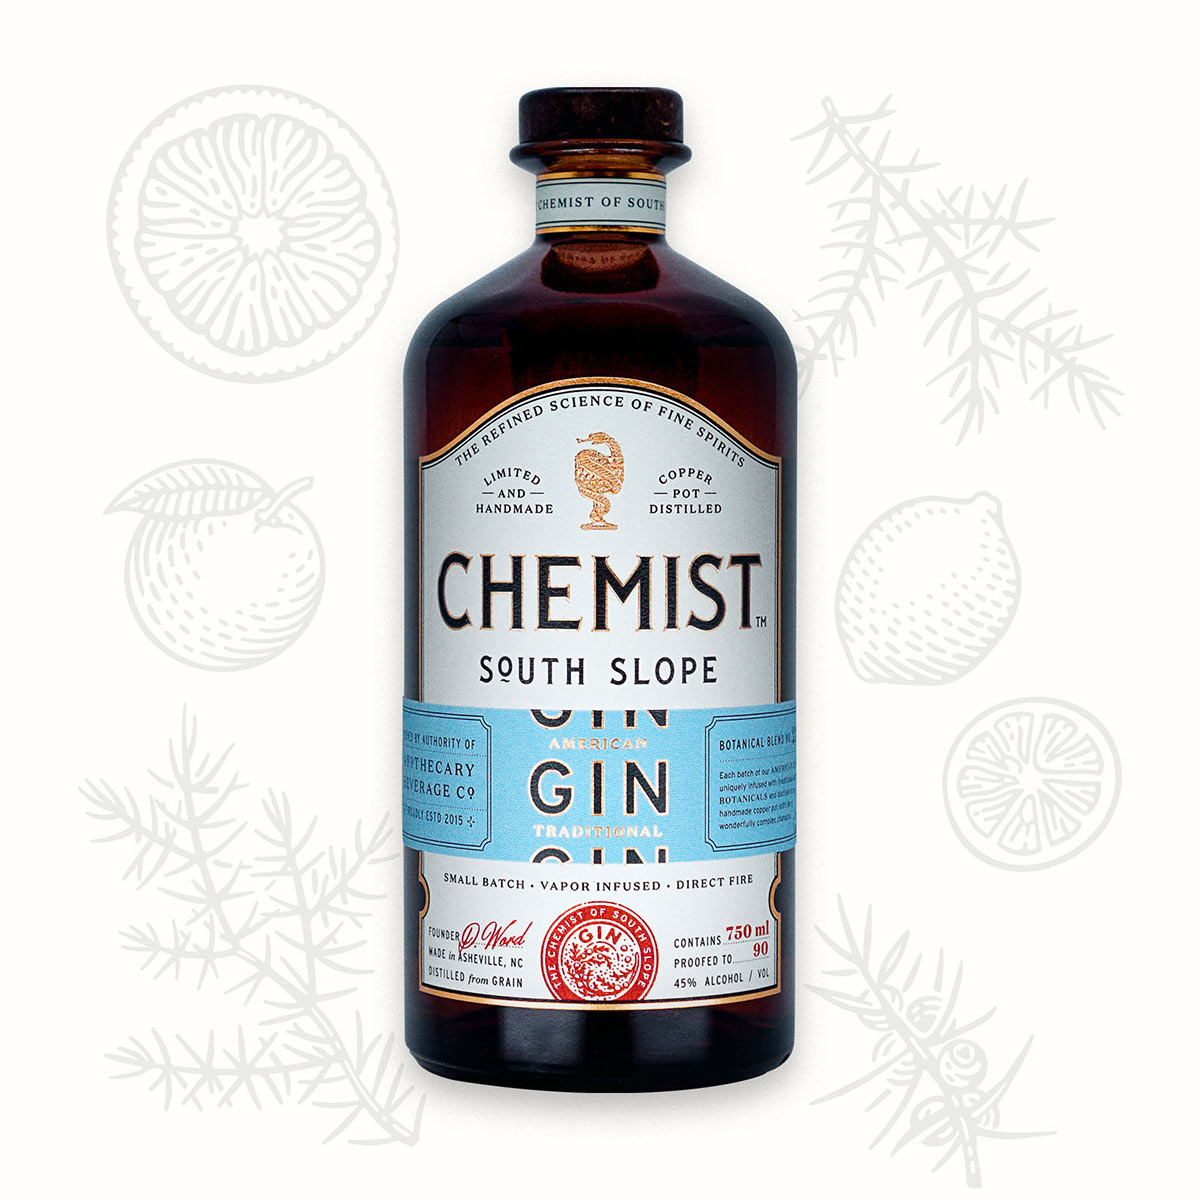 BEAUTIFULLY LIGHT AND FRESHAMERICAN GIN - The fresh and local flavors of the North Carolina Highlands give this uncommon gin a unique flavor profile that will tantalize your taste buds with every sip.